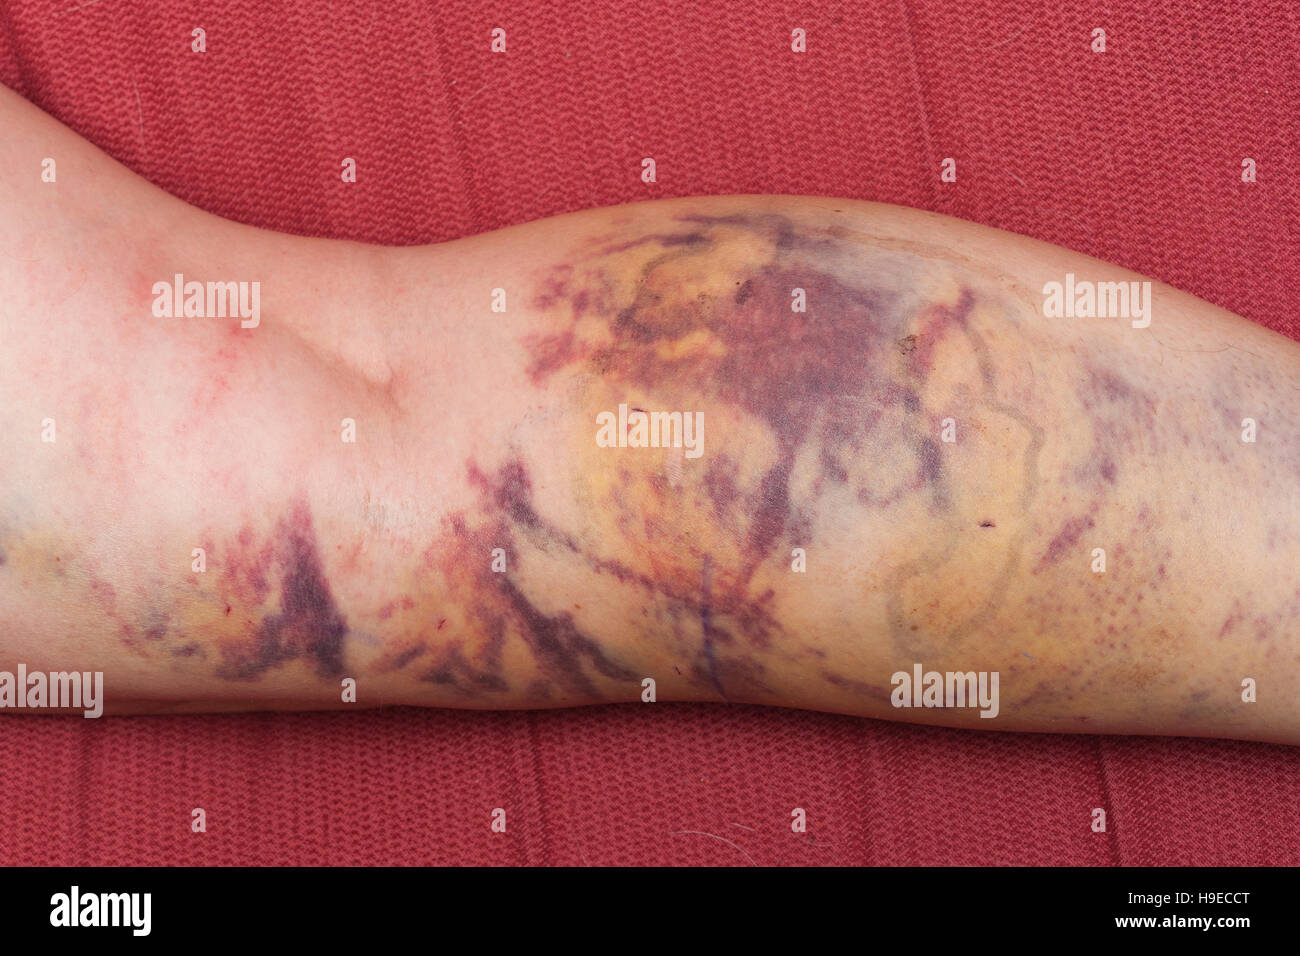 Bruises on the leg of a woman after having varicose veins removed by laser in the Uk - Stock Image